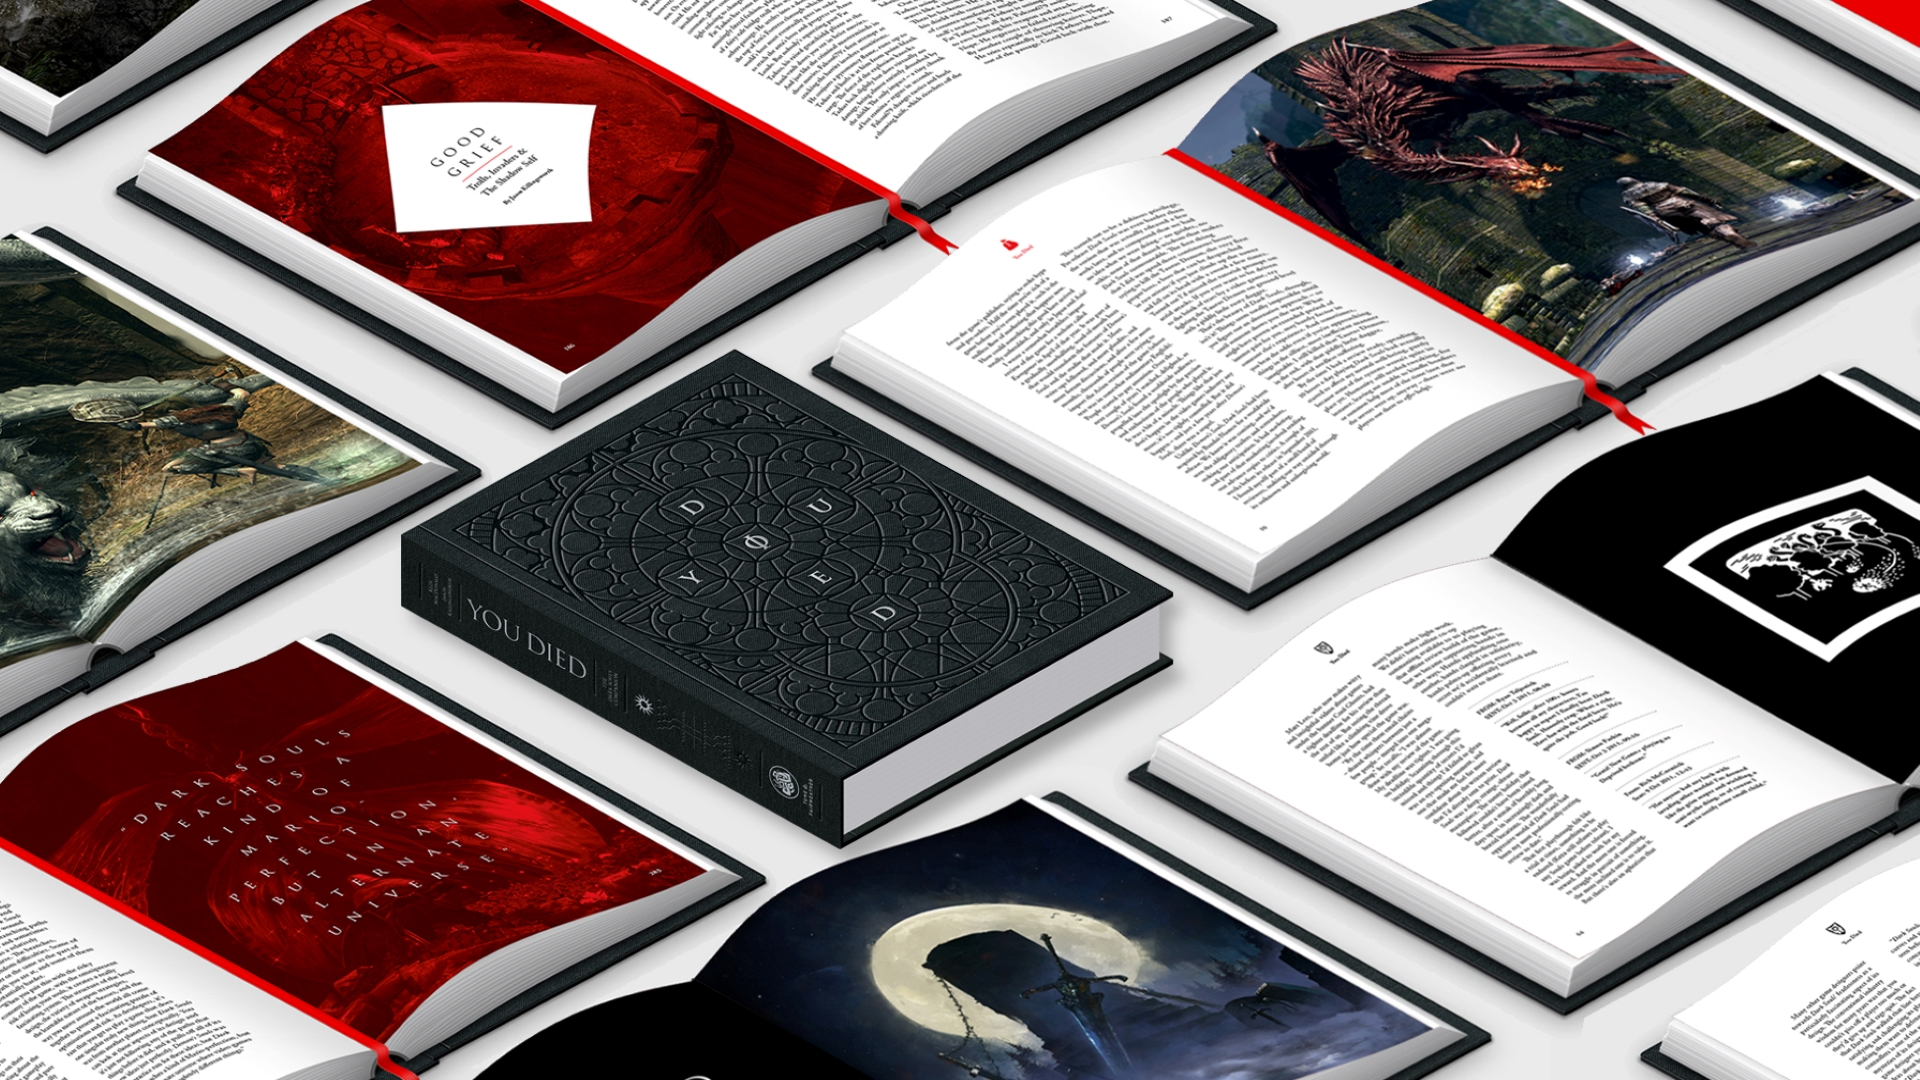 Kickstarter campaign for deluxe hardcover Dark Souls book You Died goes live